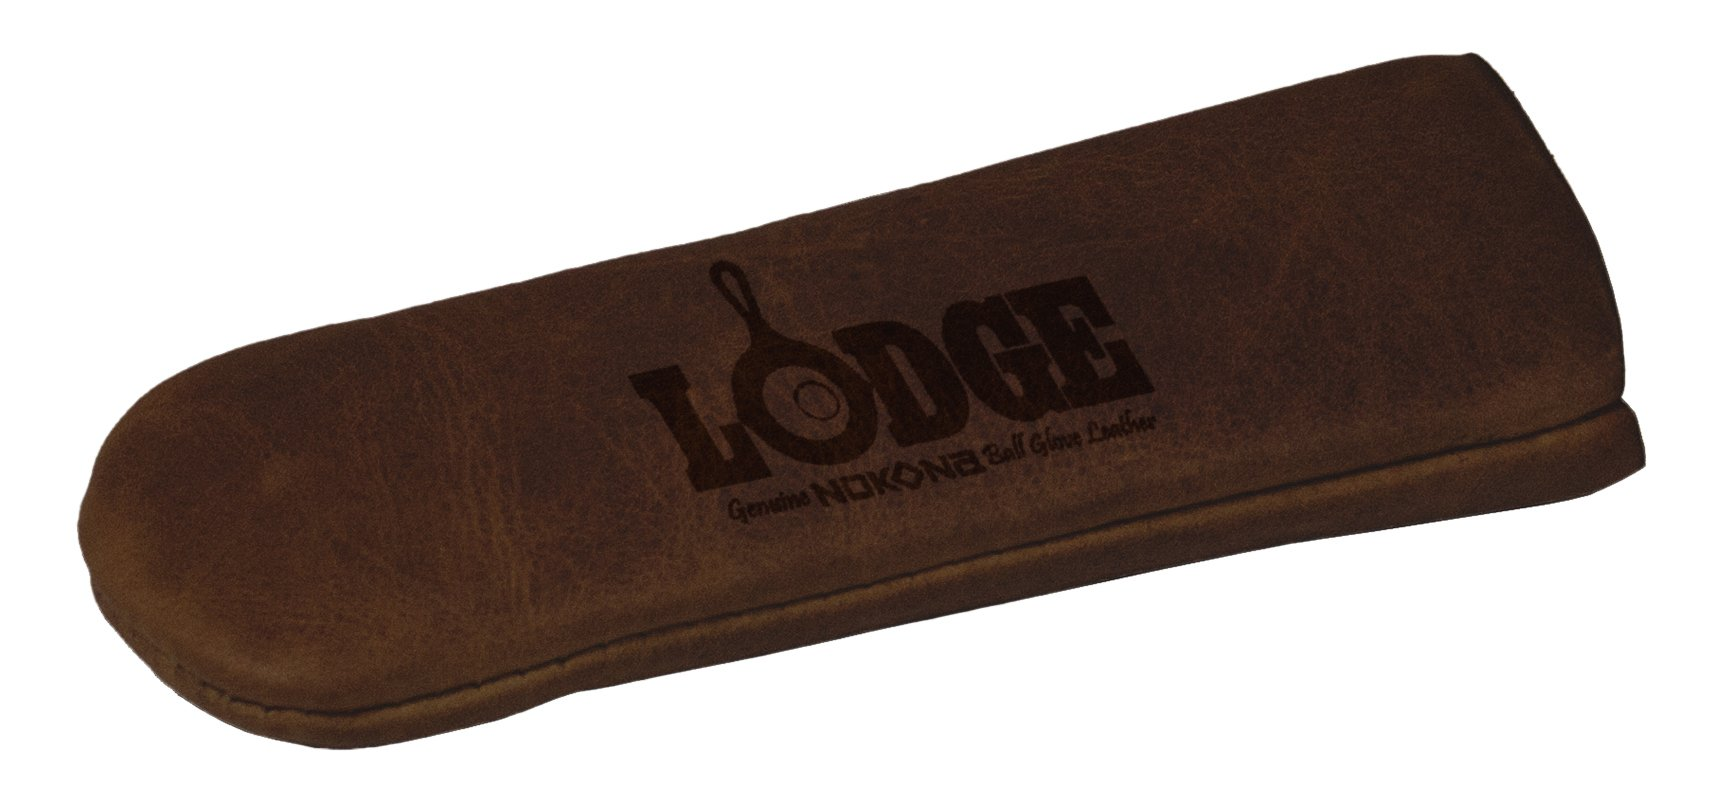 Lodge ALHHNS85 Nokona Leather Hot Handle Holder, Coffee